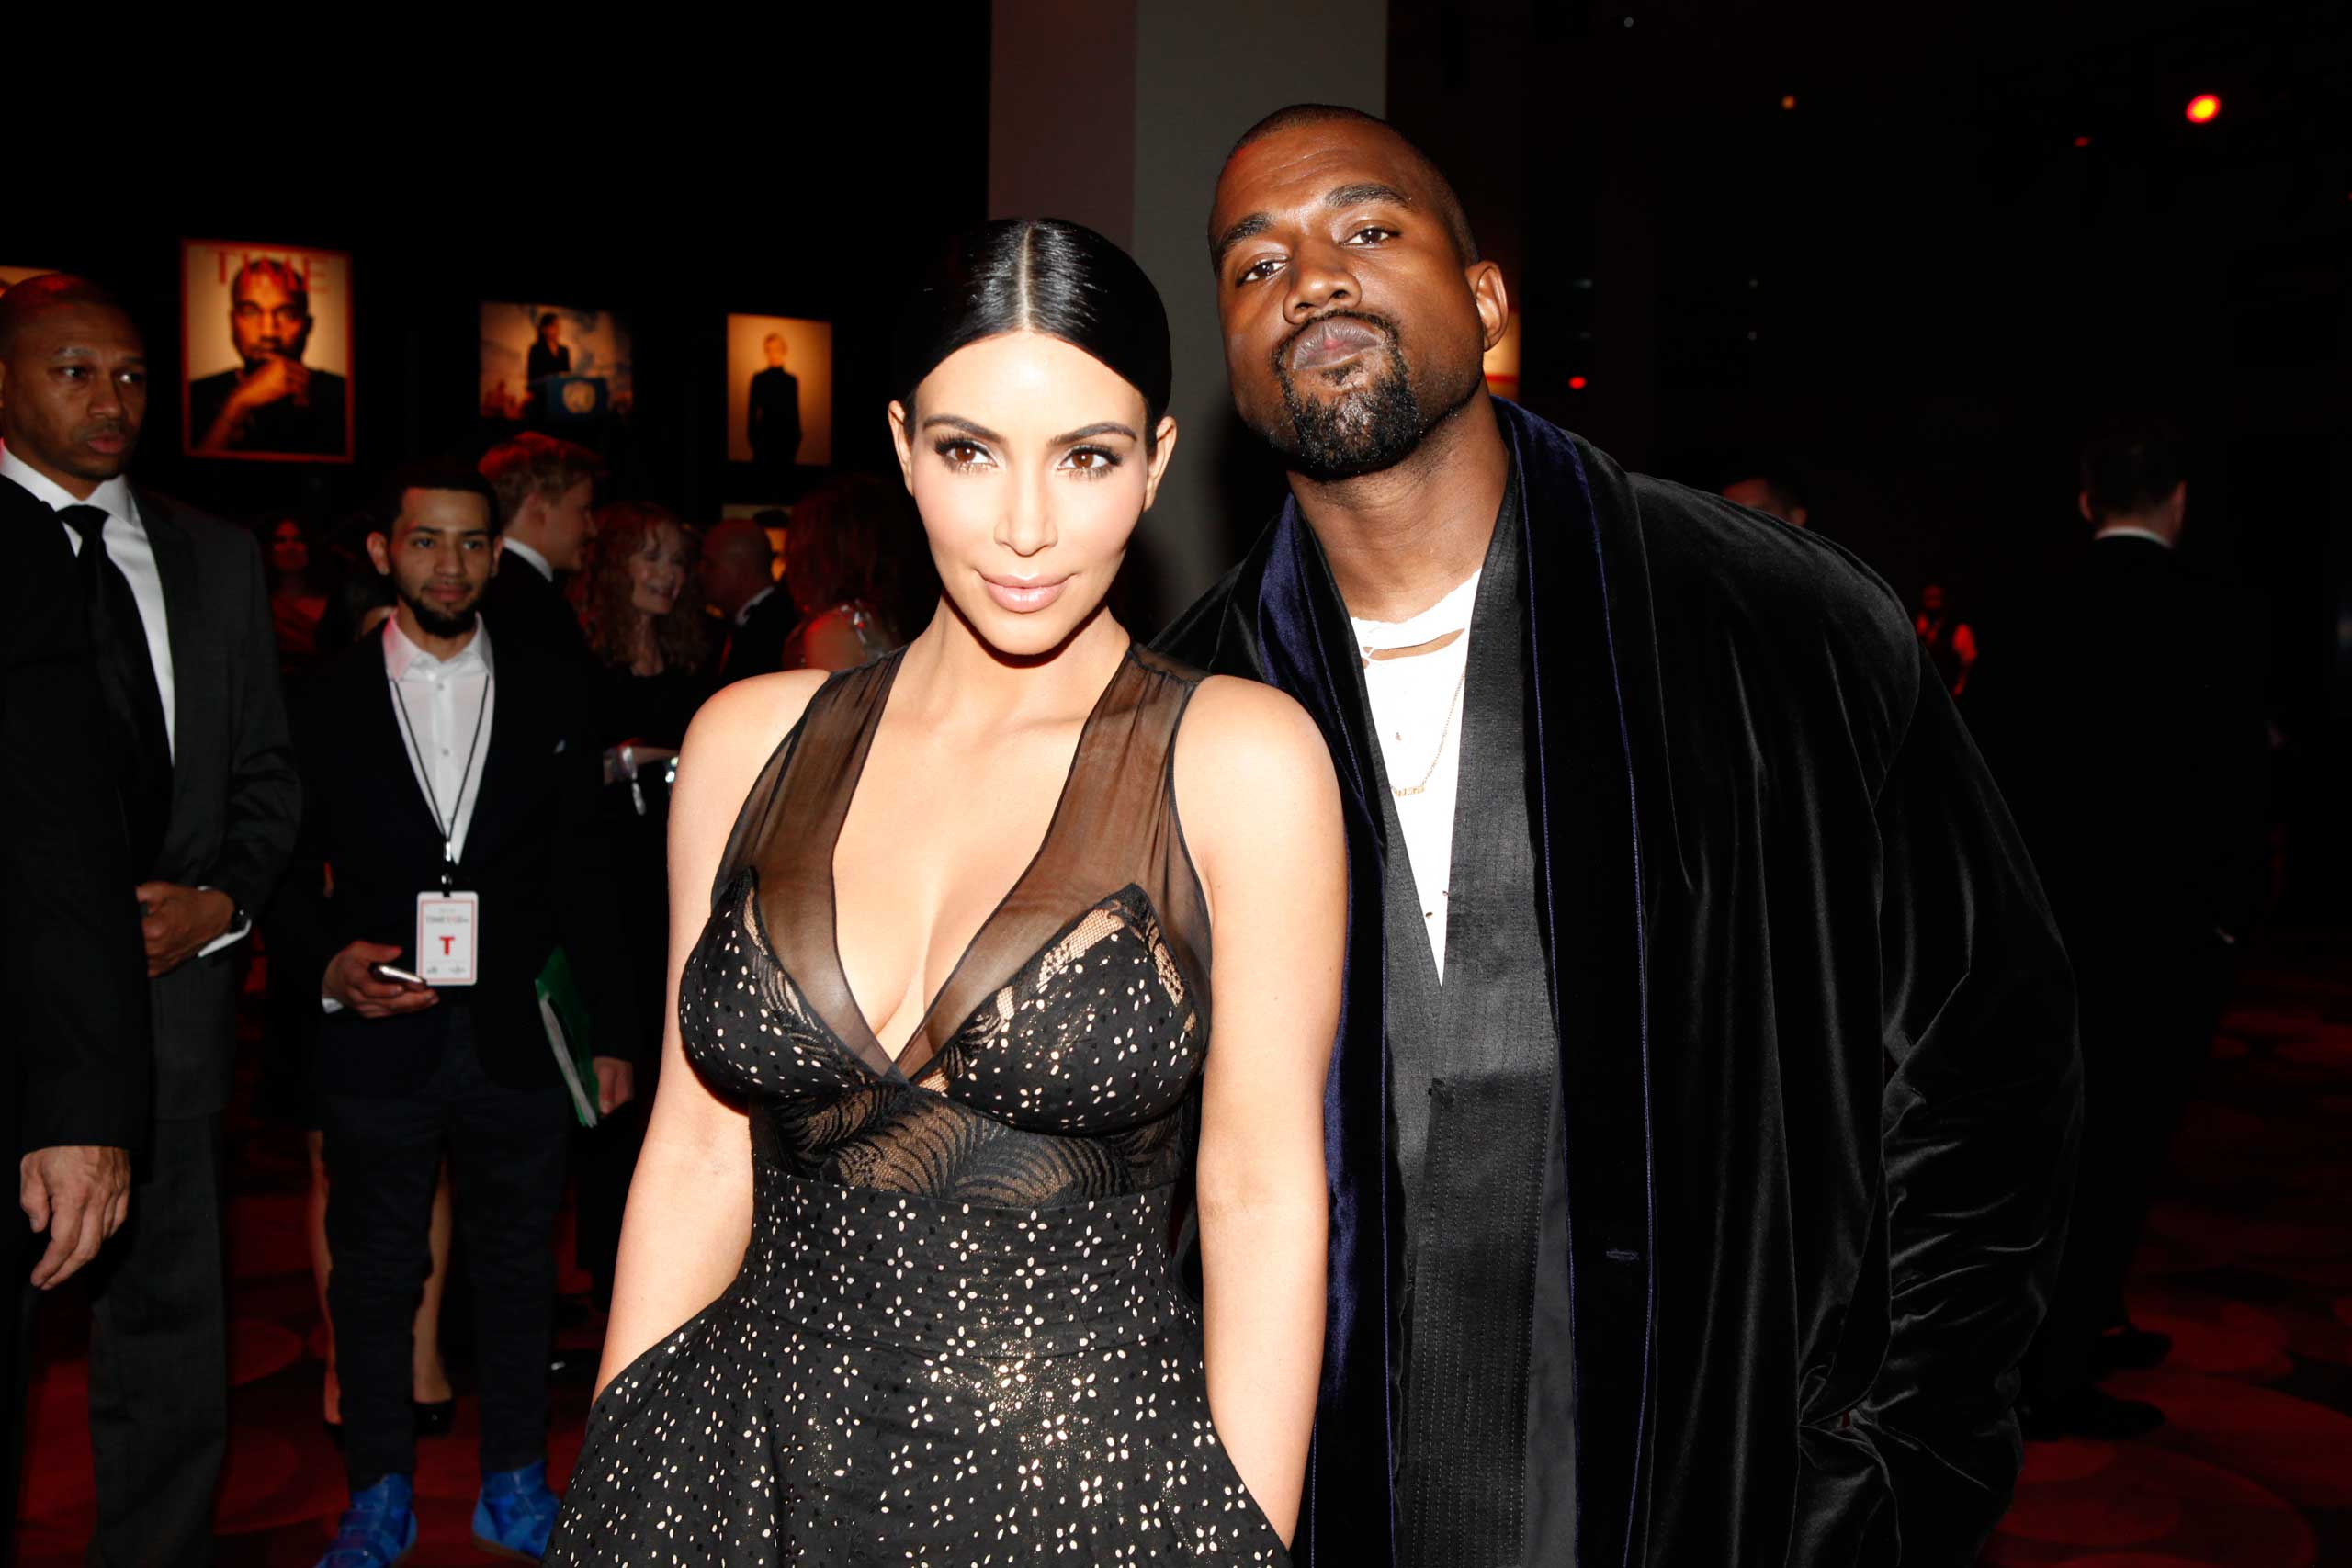 Kim Kardashian West and Kanye West attend the TIME 100 Gala at Jazz at Lincoln Center in New York City on April 21, 2015